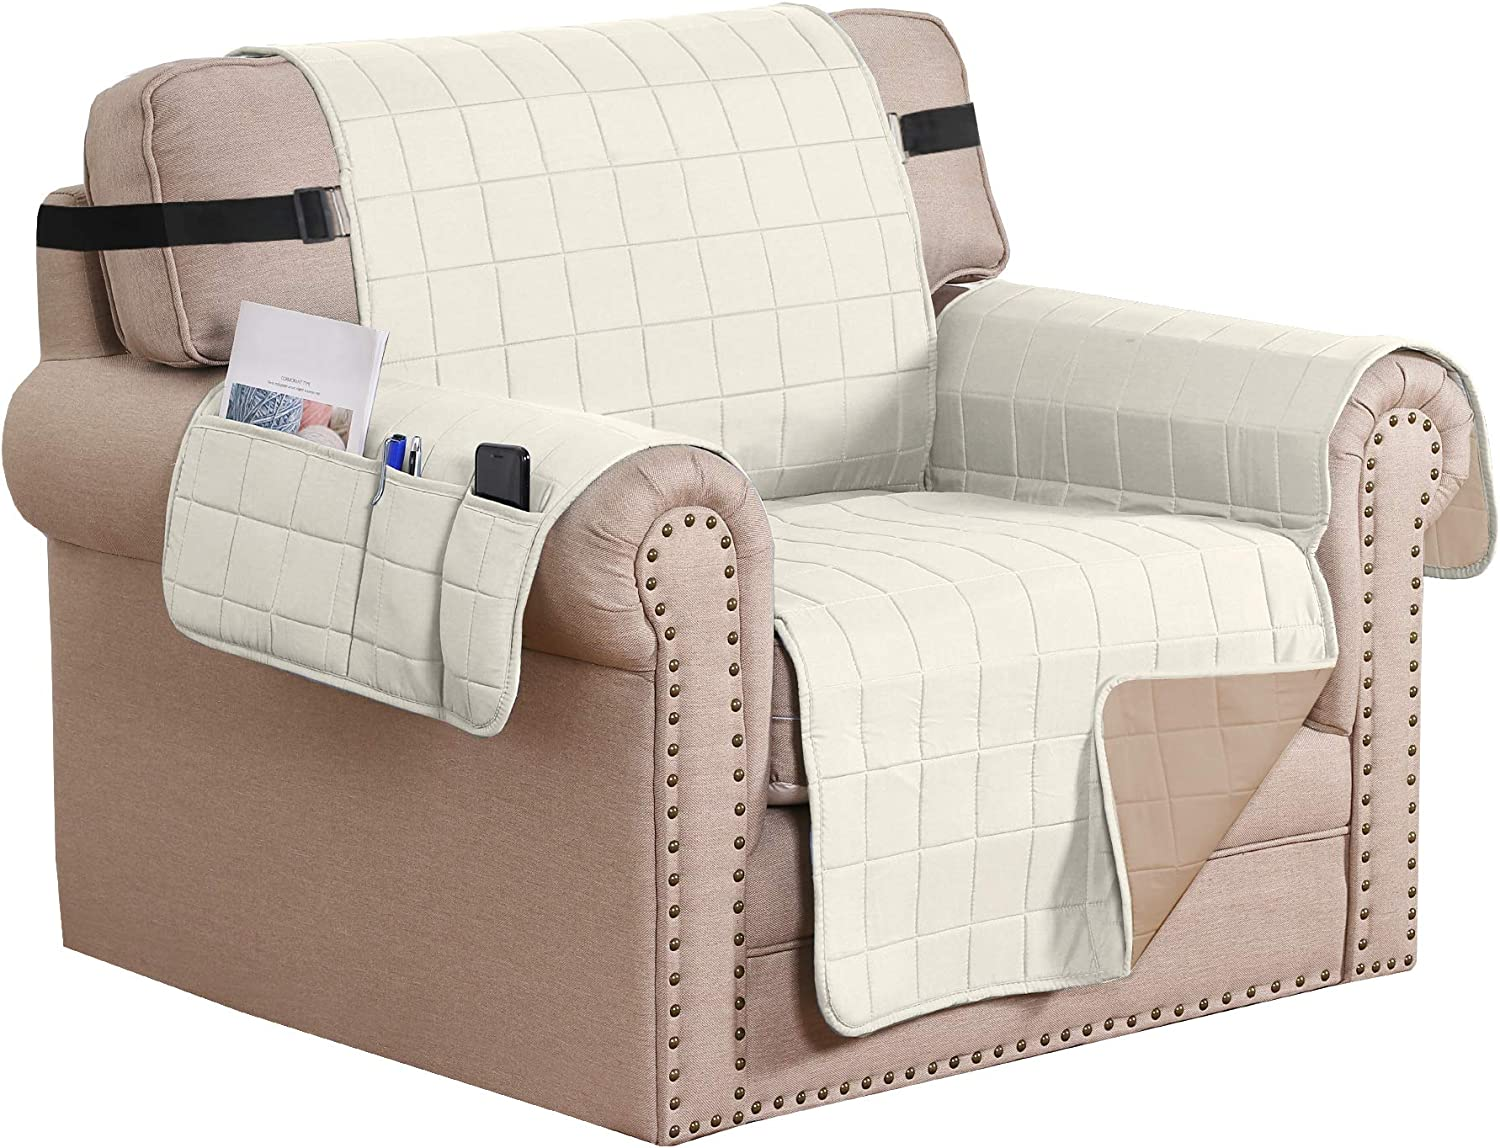 H.VERSAILTEX Reversible Foam Quilted Non-Slip Furniture Protector with Side Pockets, 2